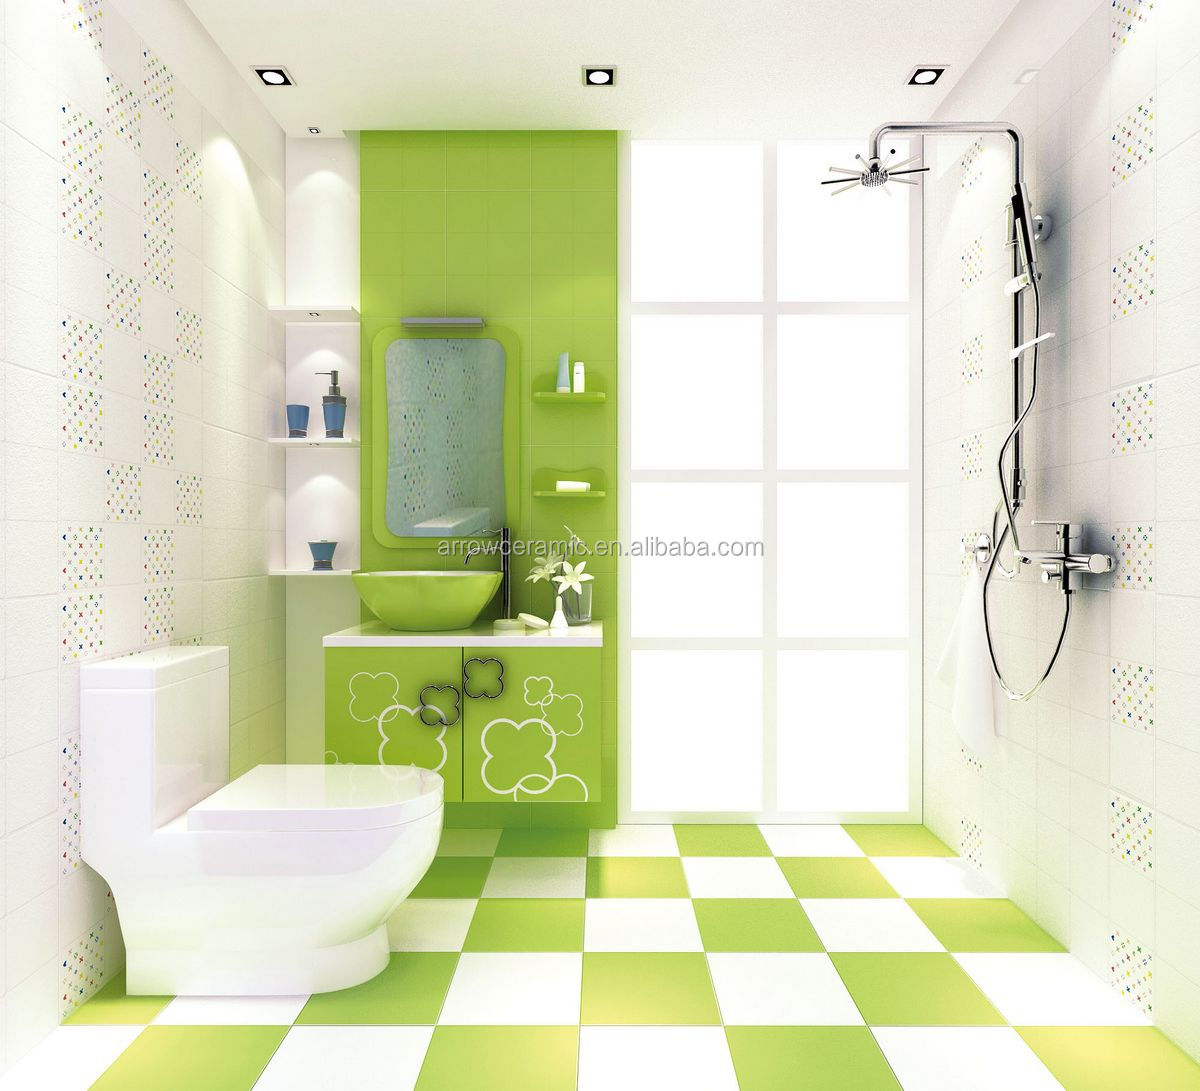 Glazed green wall tiles 450x300tiles on the bedroom walltile glazed green wall tiles 450x300 tiles on the bedroom wall tile bathroom models dailygadgetfo Image collections